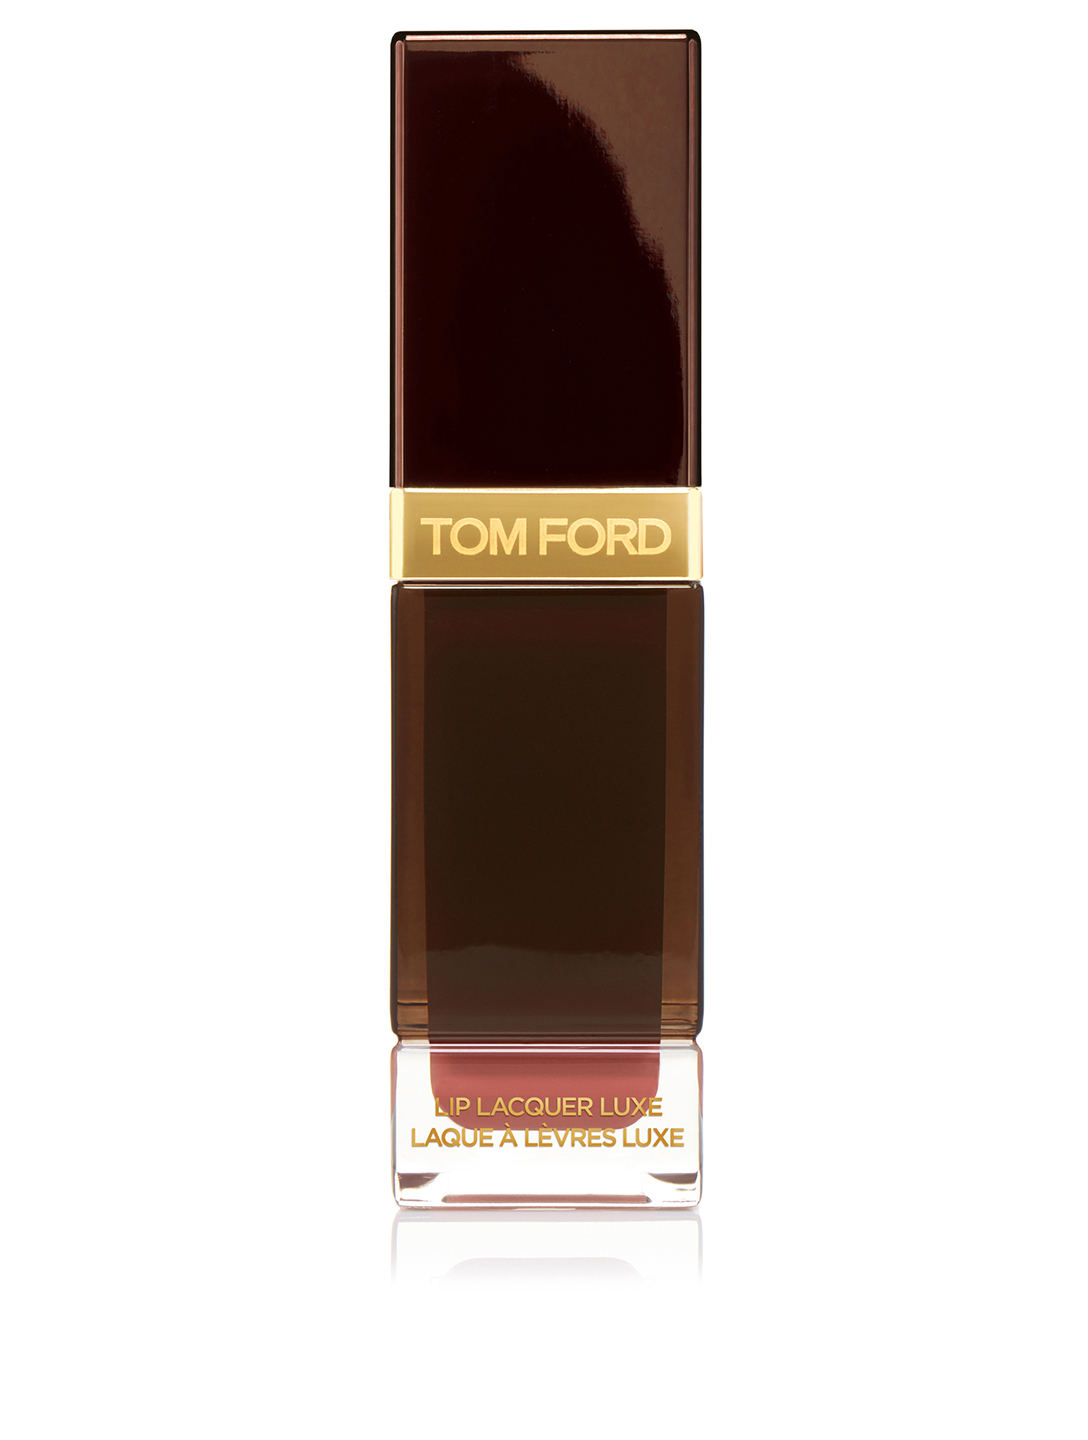 TOM FORD Liquid Vinyl Lip Lacquer Luxe Beauty Neutral